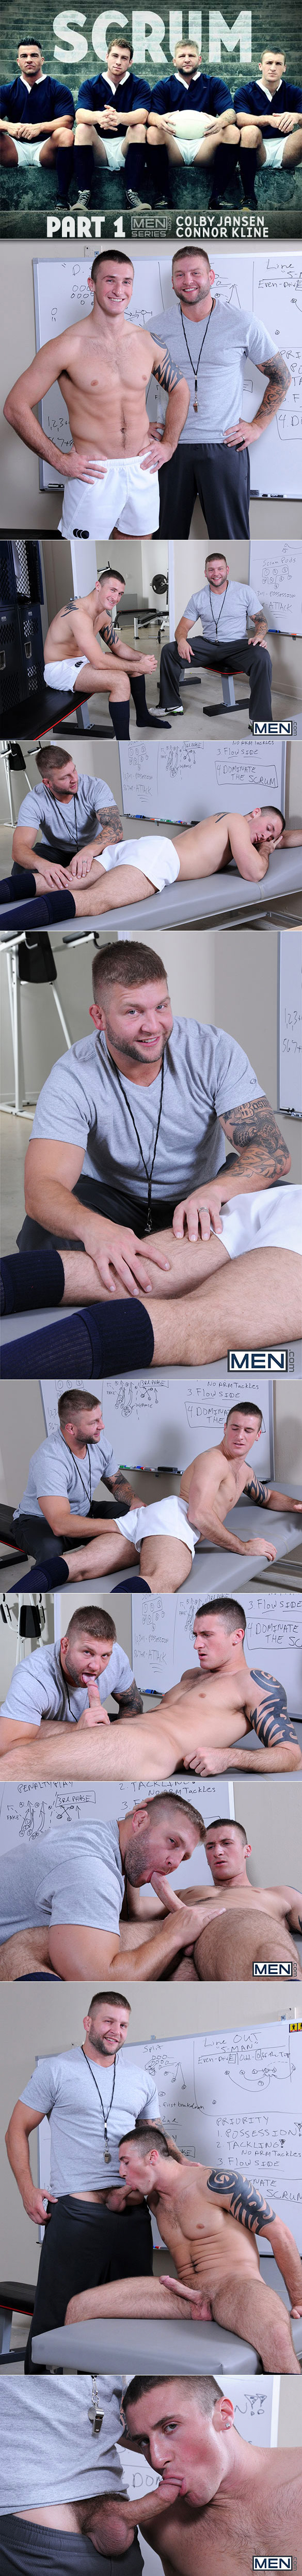 "Men.com: Colby Jansen pounds Connor Kline in ""Scrum, Part 1"""